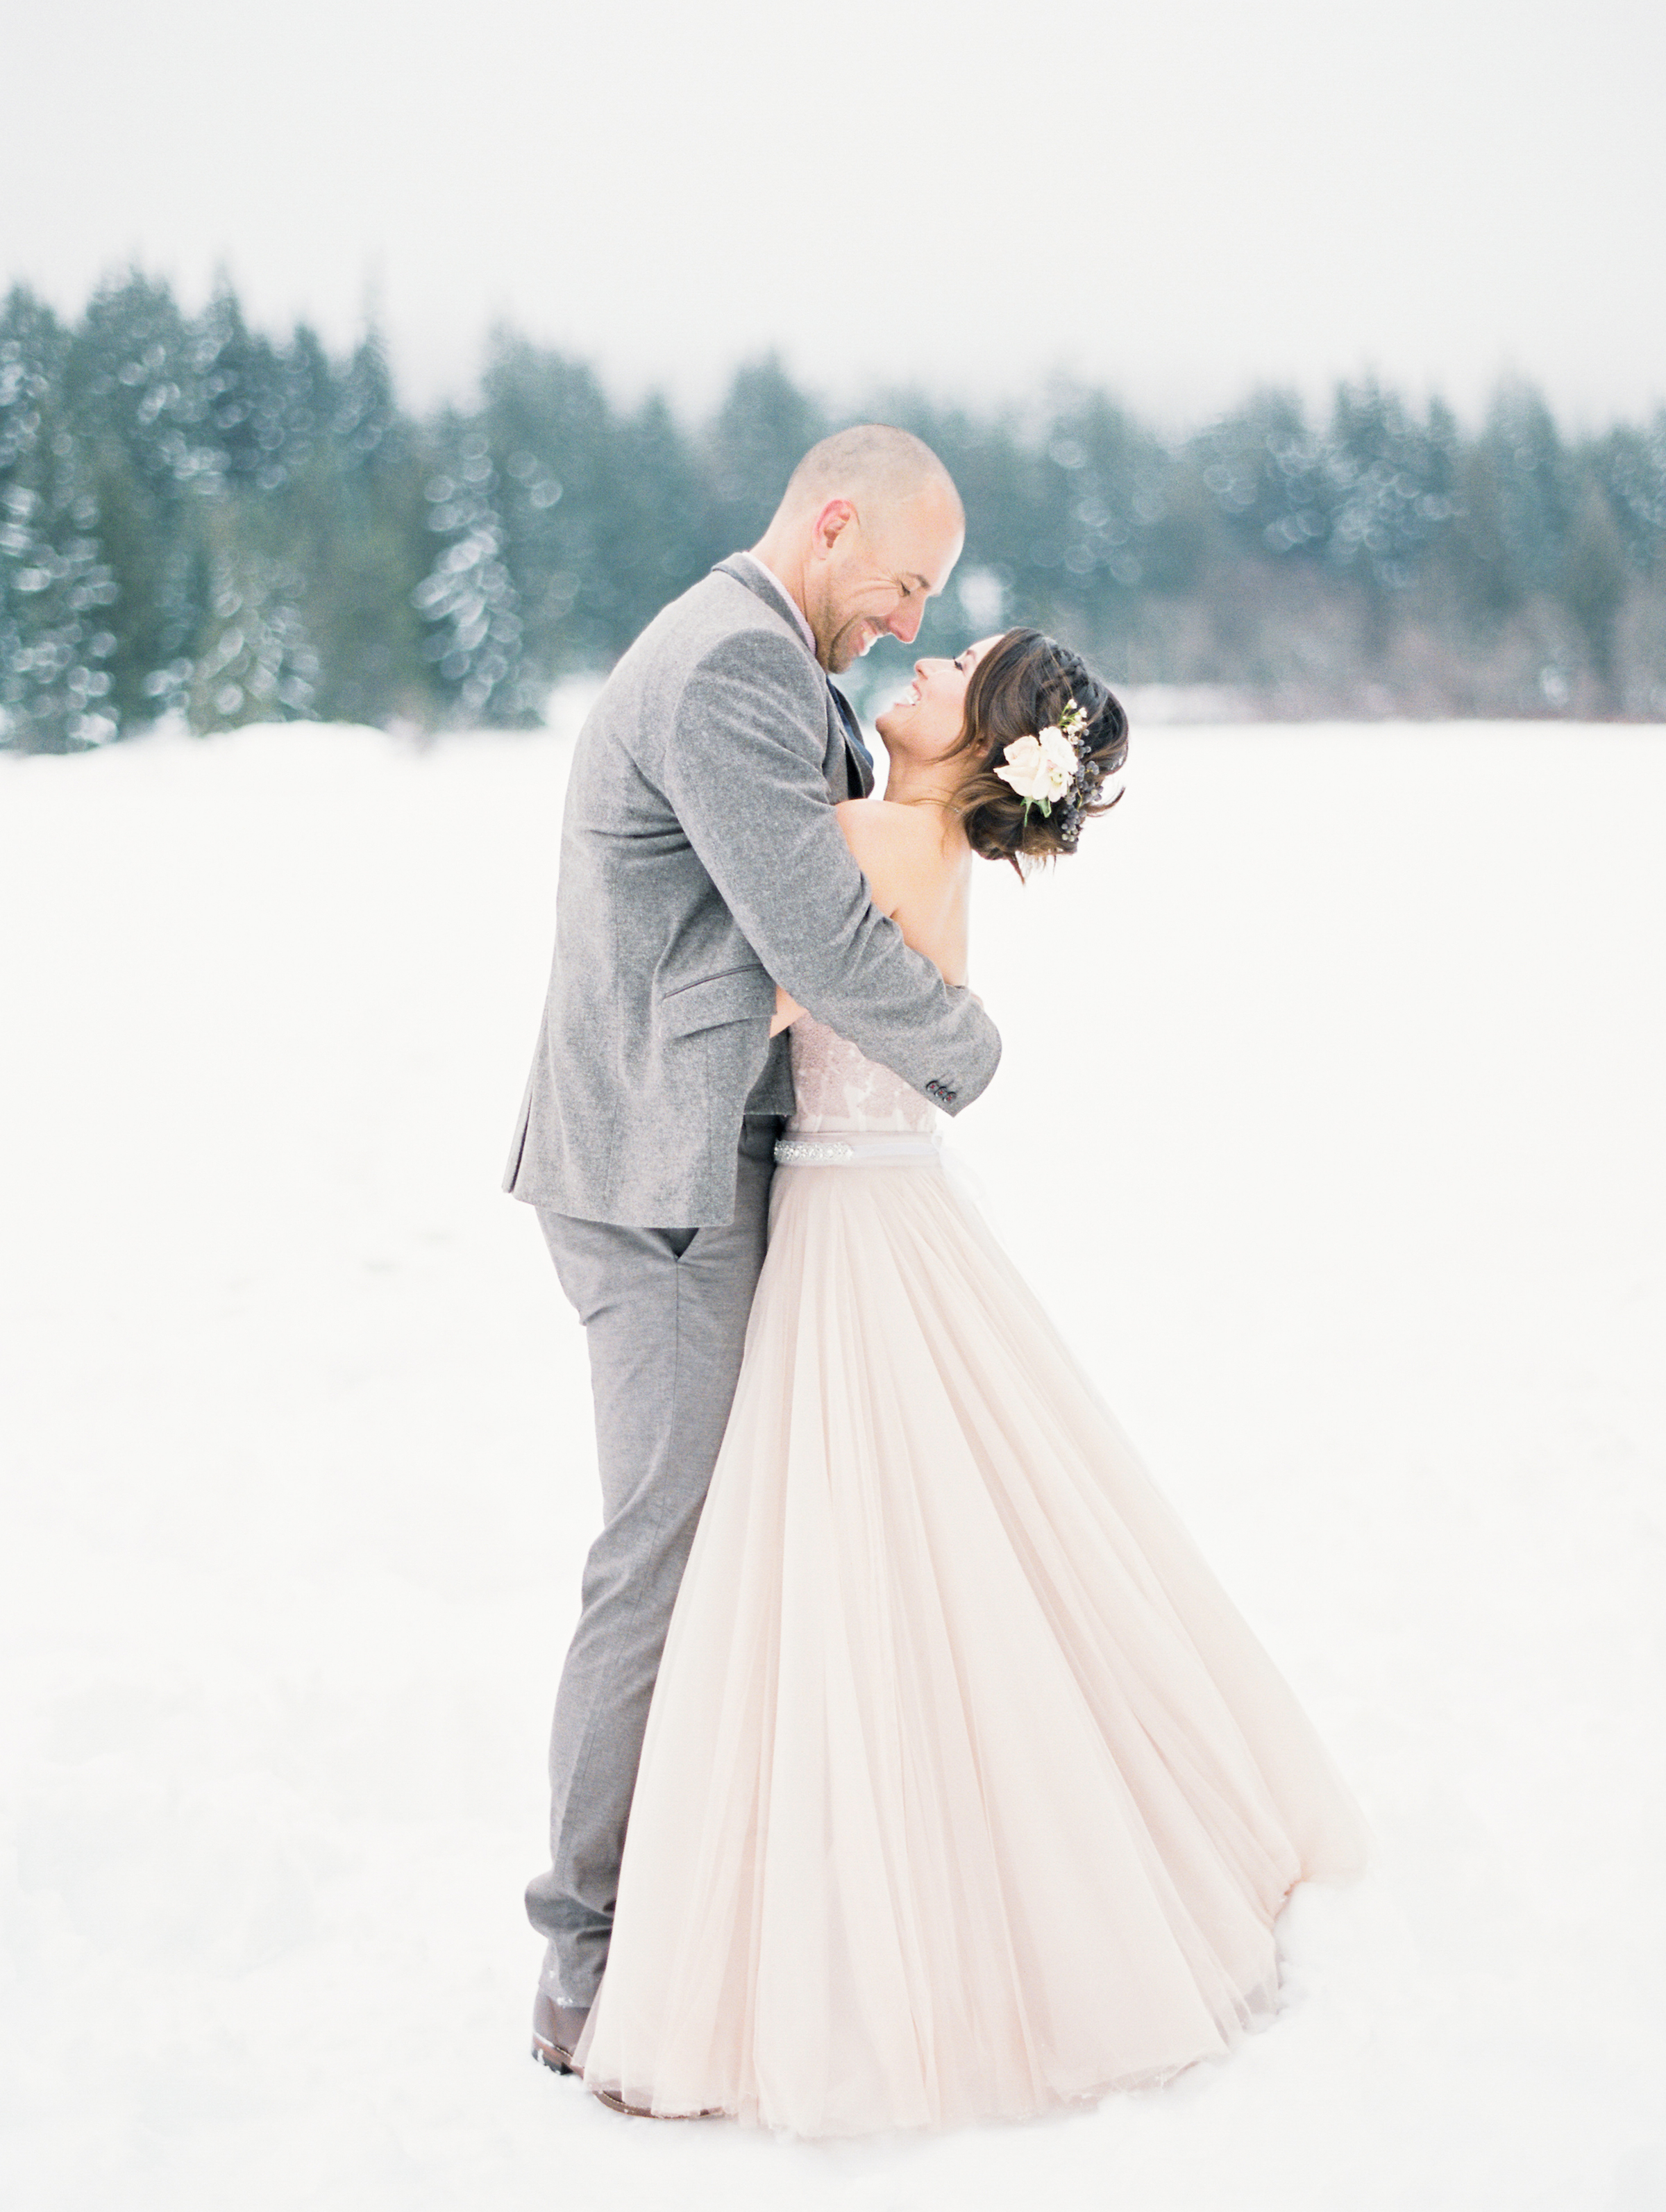 Can You Have an Outdoor Ceremony During the Winter?